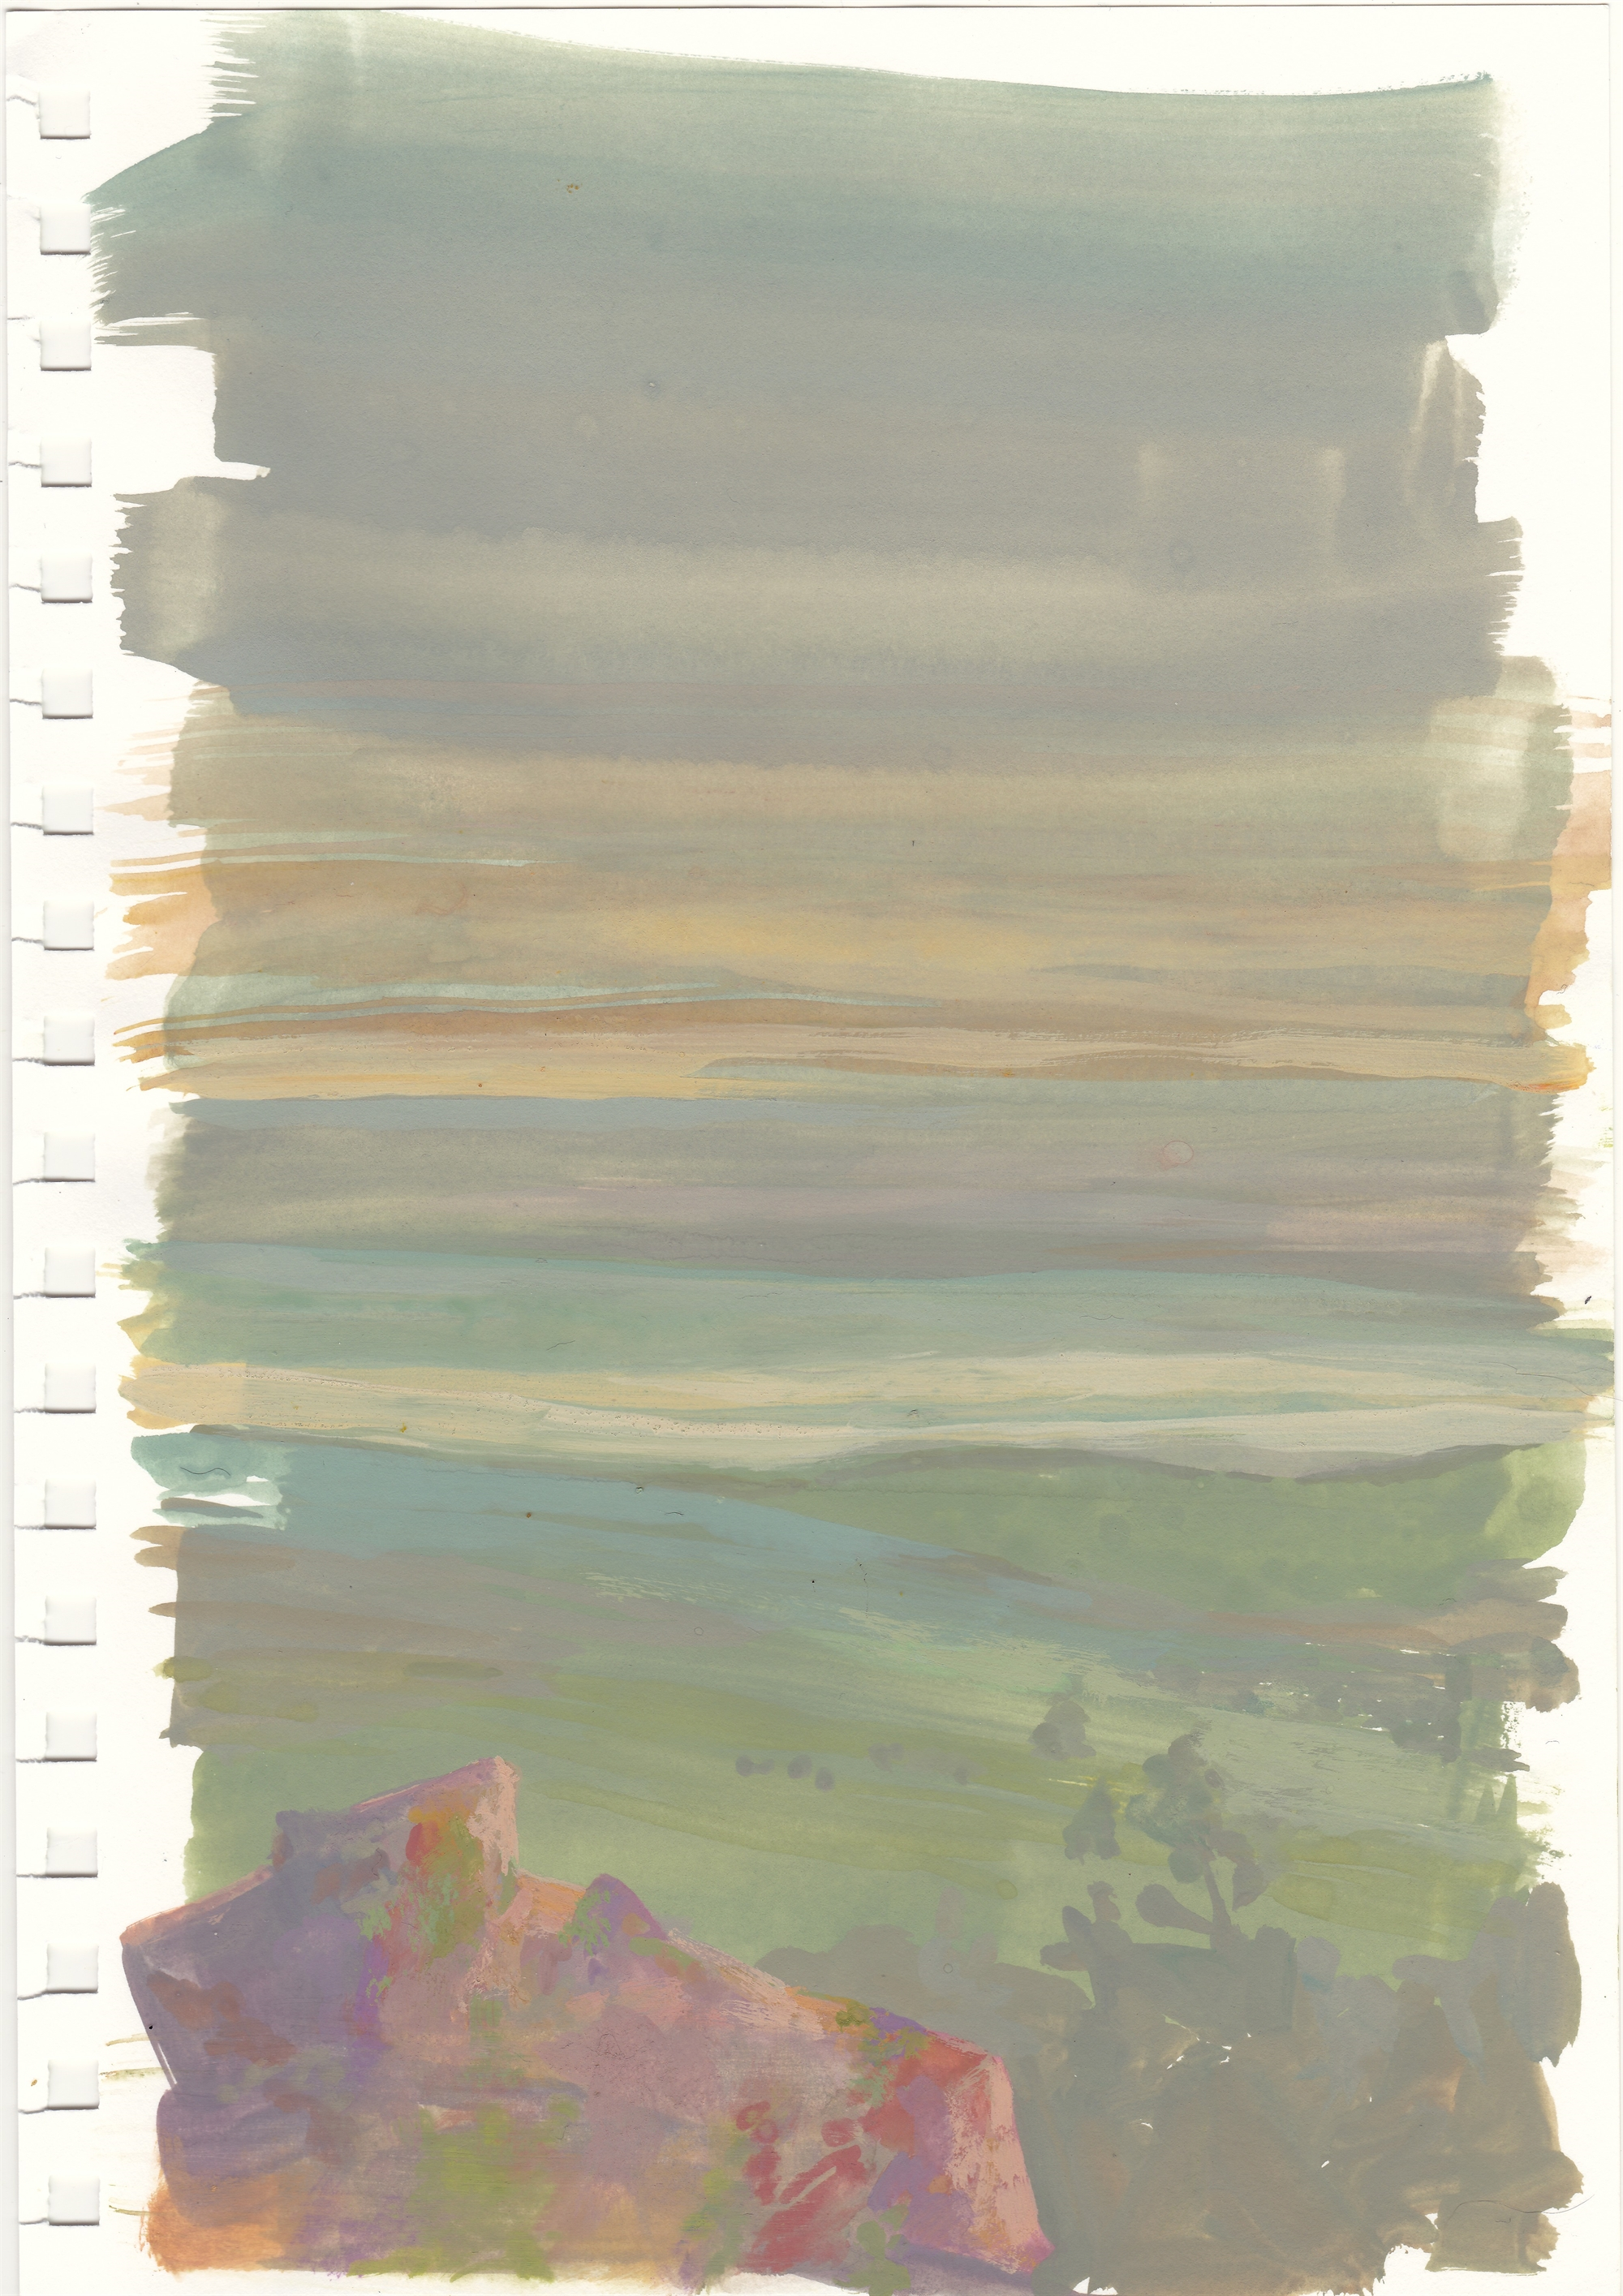 Study: Pink Boulder In The Foggy Evening by Charis Carmichael Braun